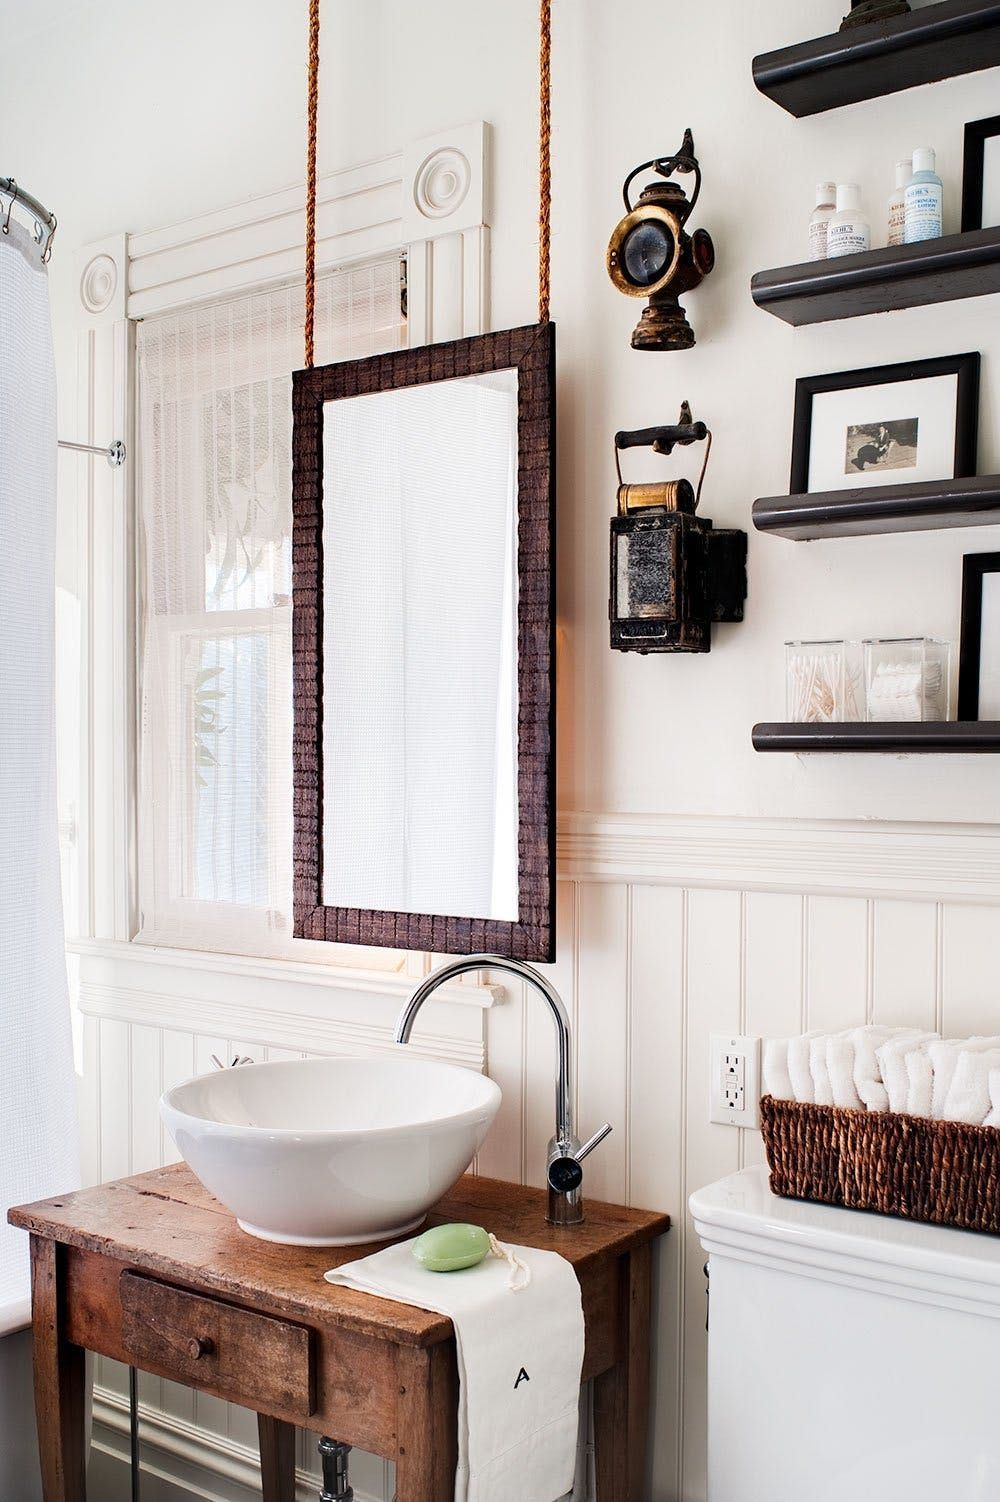 This cozy bathroom would certainly lean more rustic if not for the